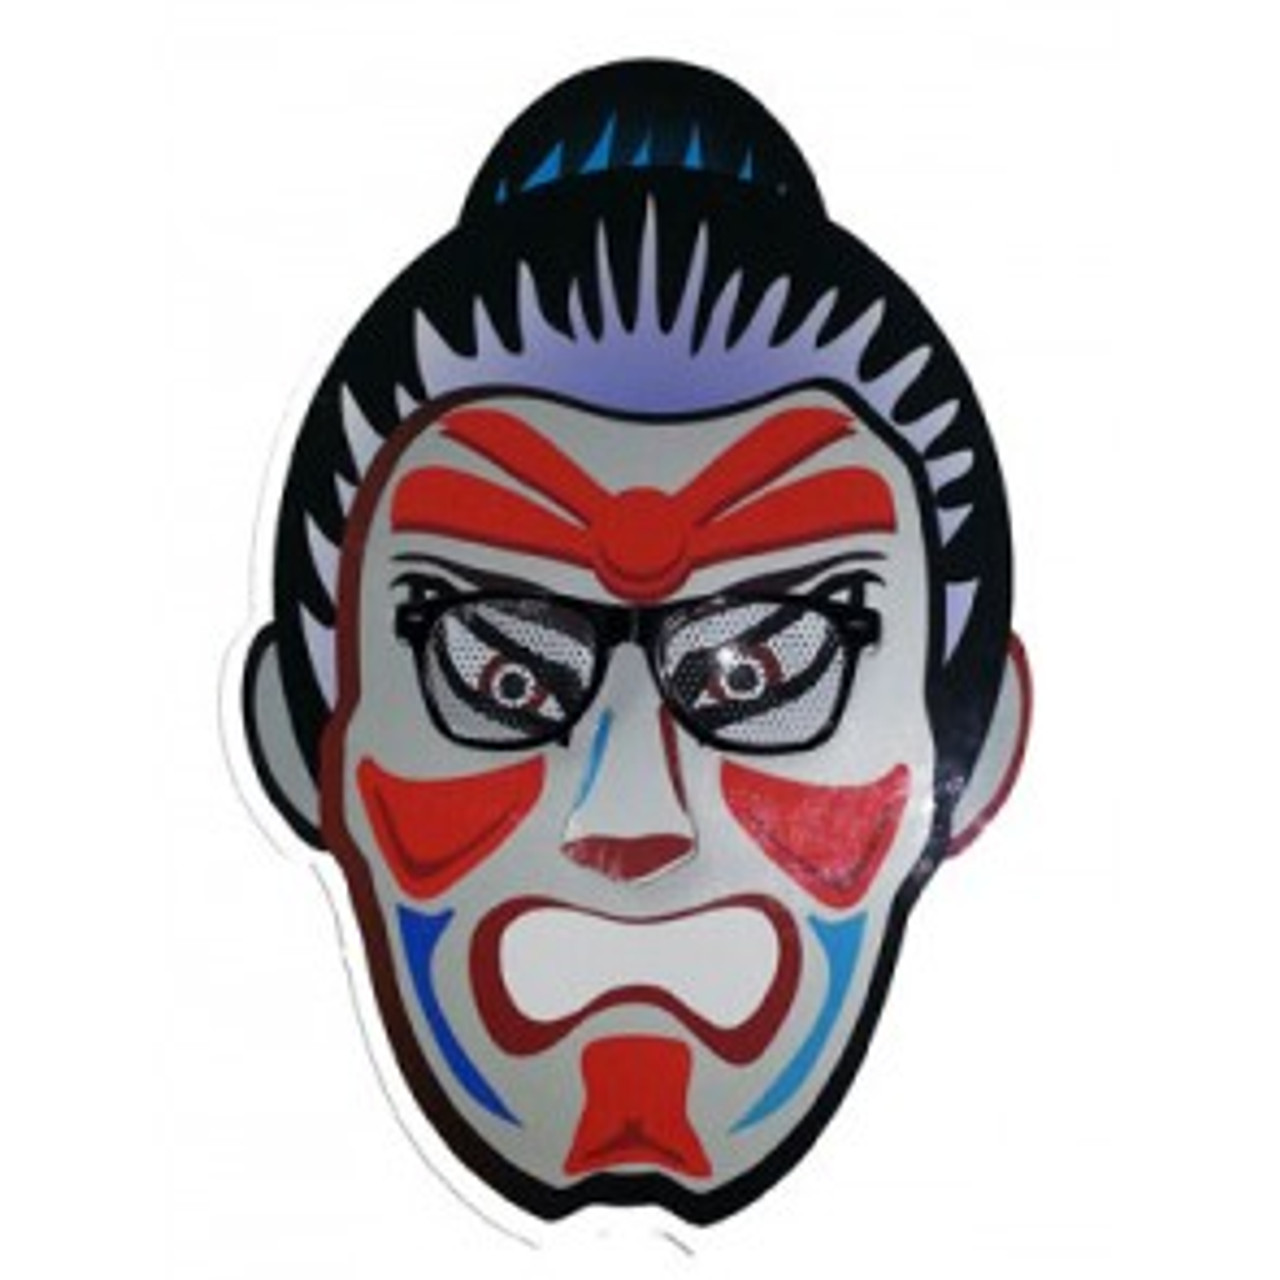 FUNFACES, Promo, Cutout, Cut out, Mask, Fun Faces, Promo mask,